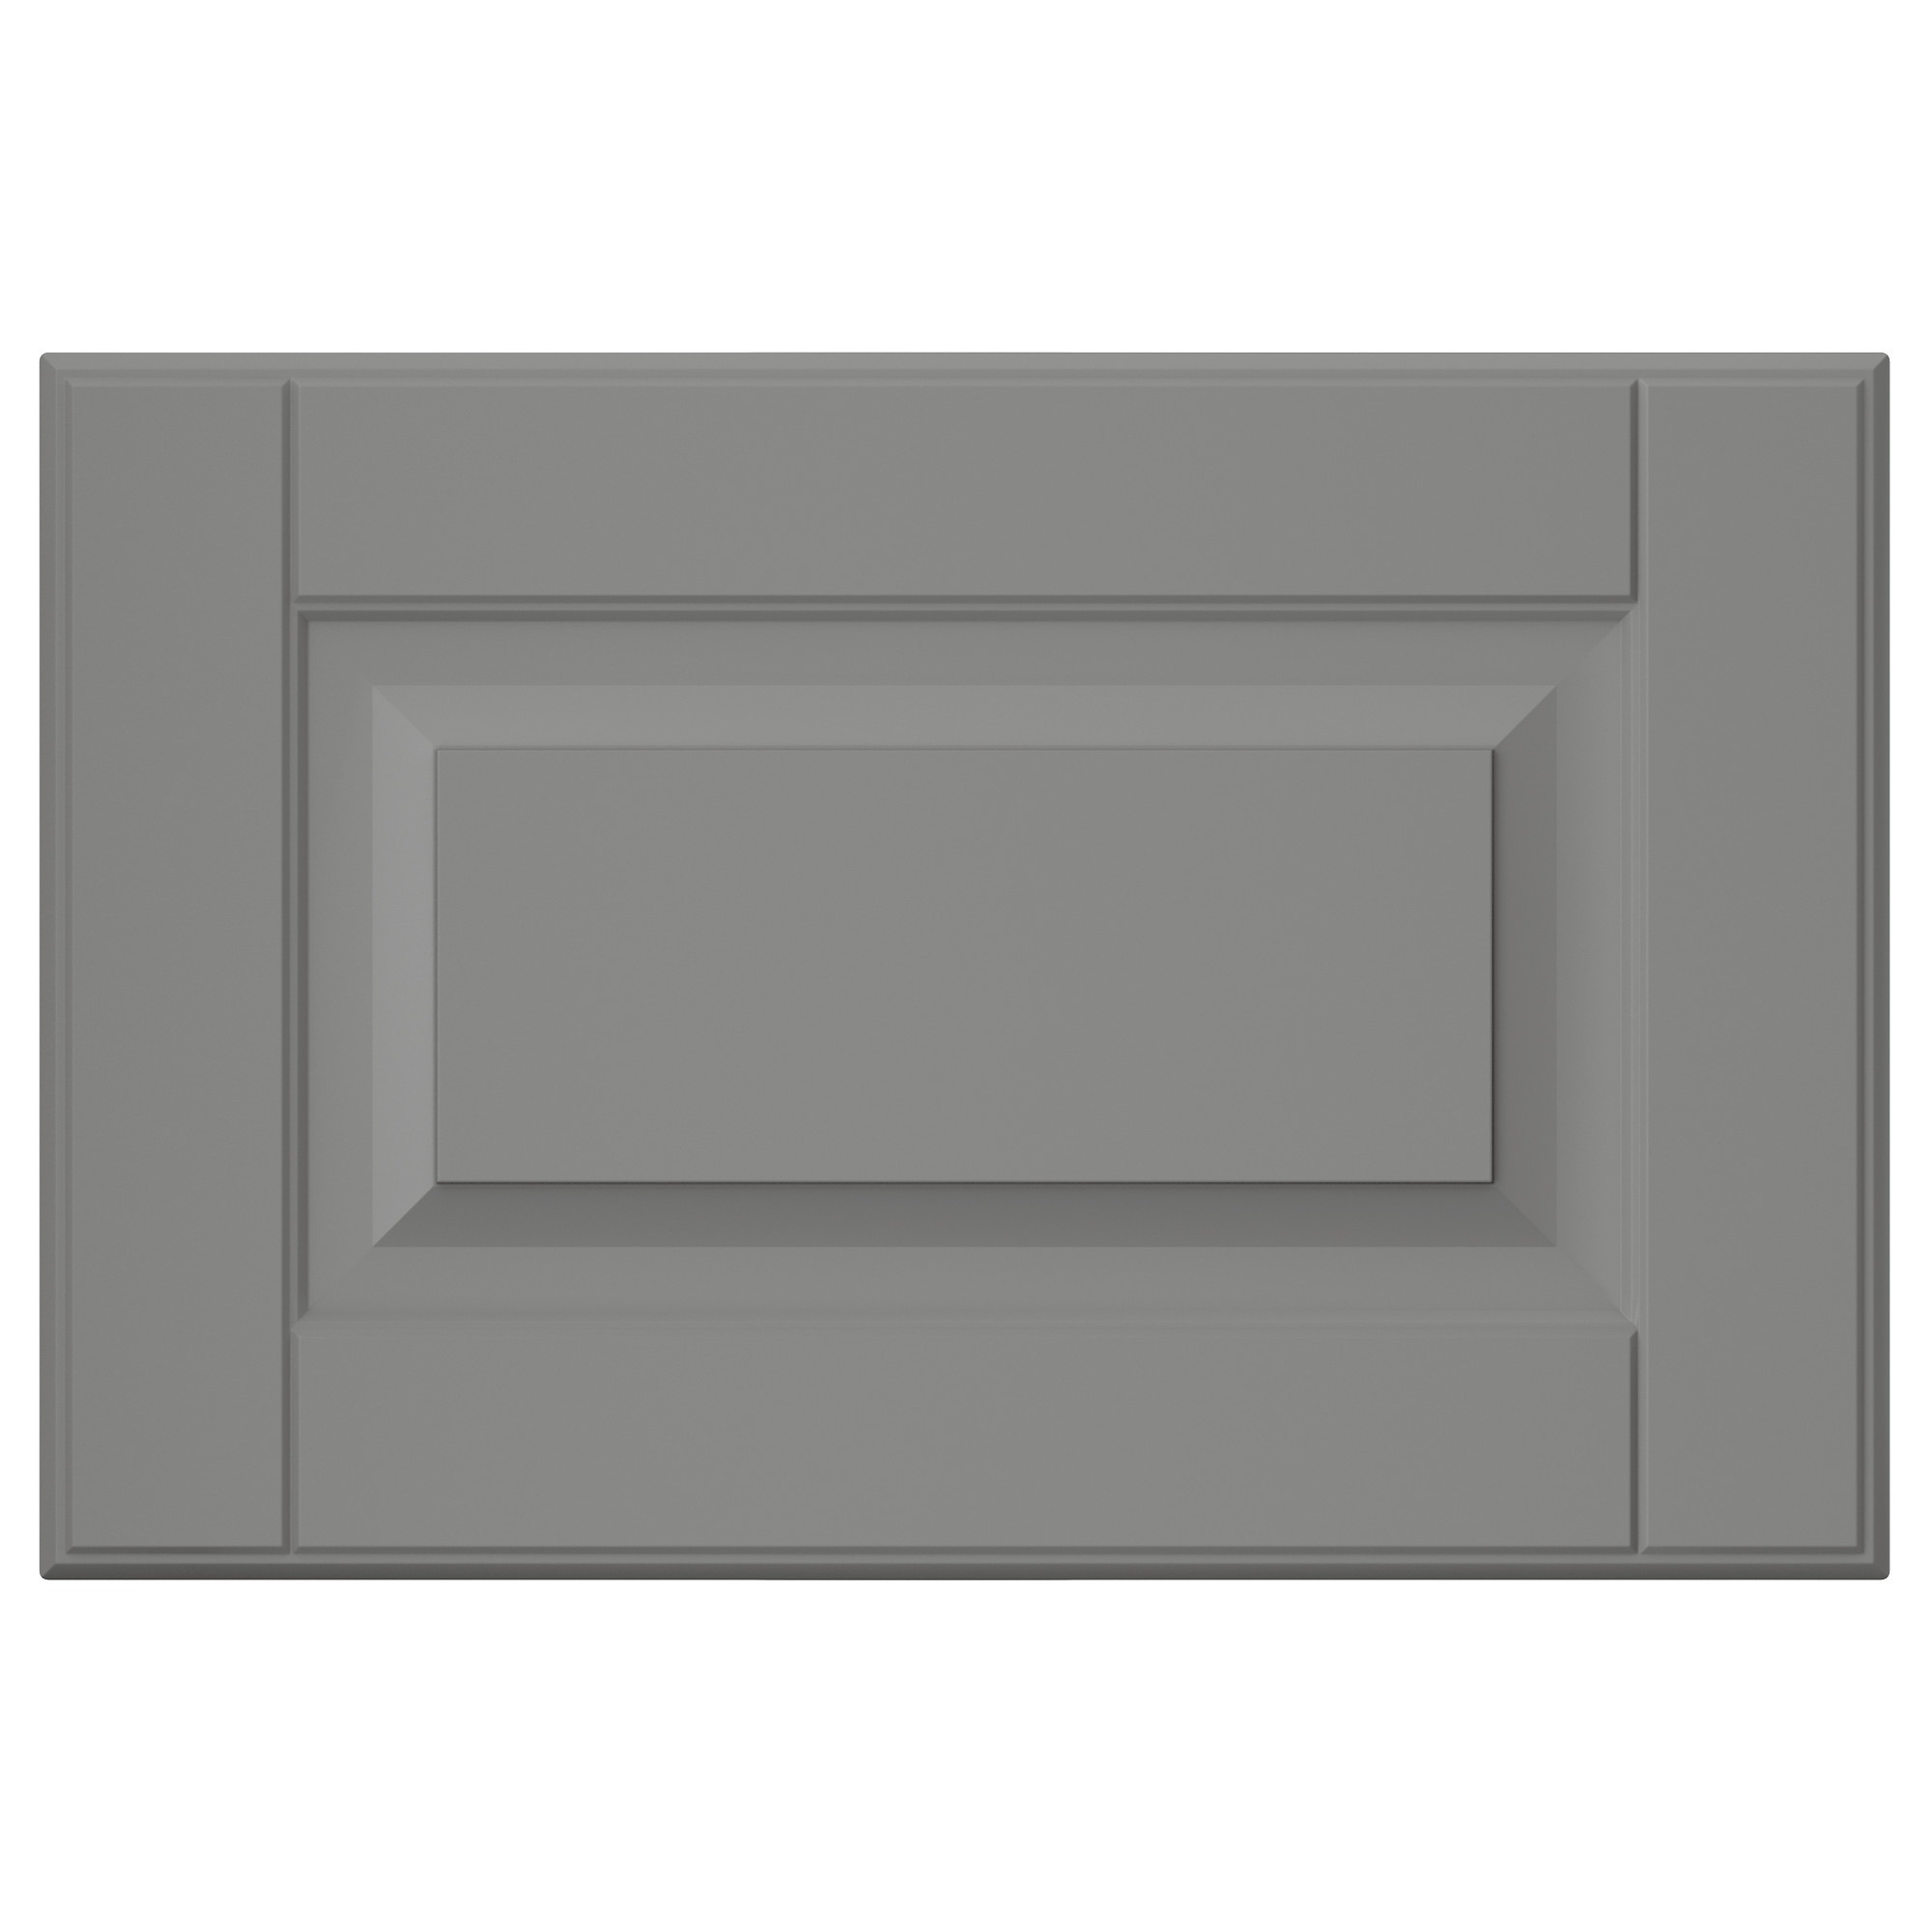 Bodbyn Drawer Front Gray Width 14 7 8 System Height